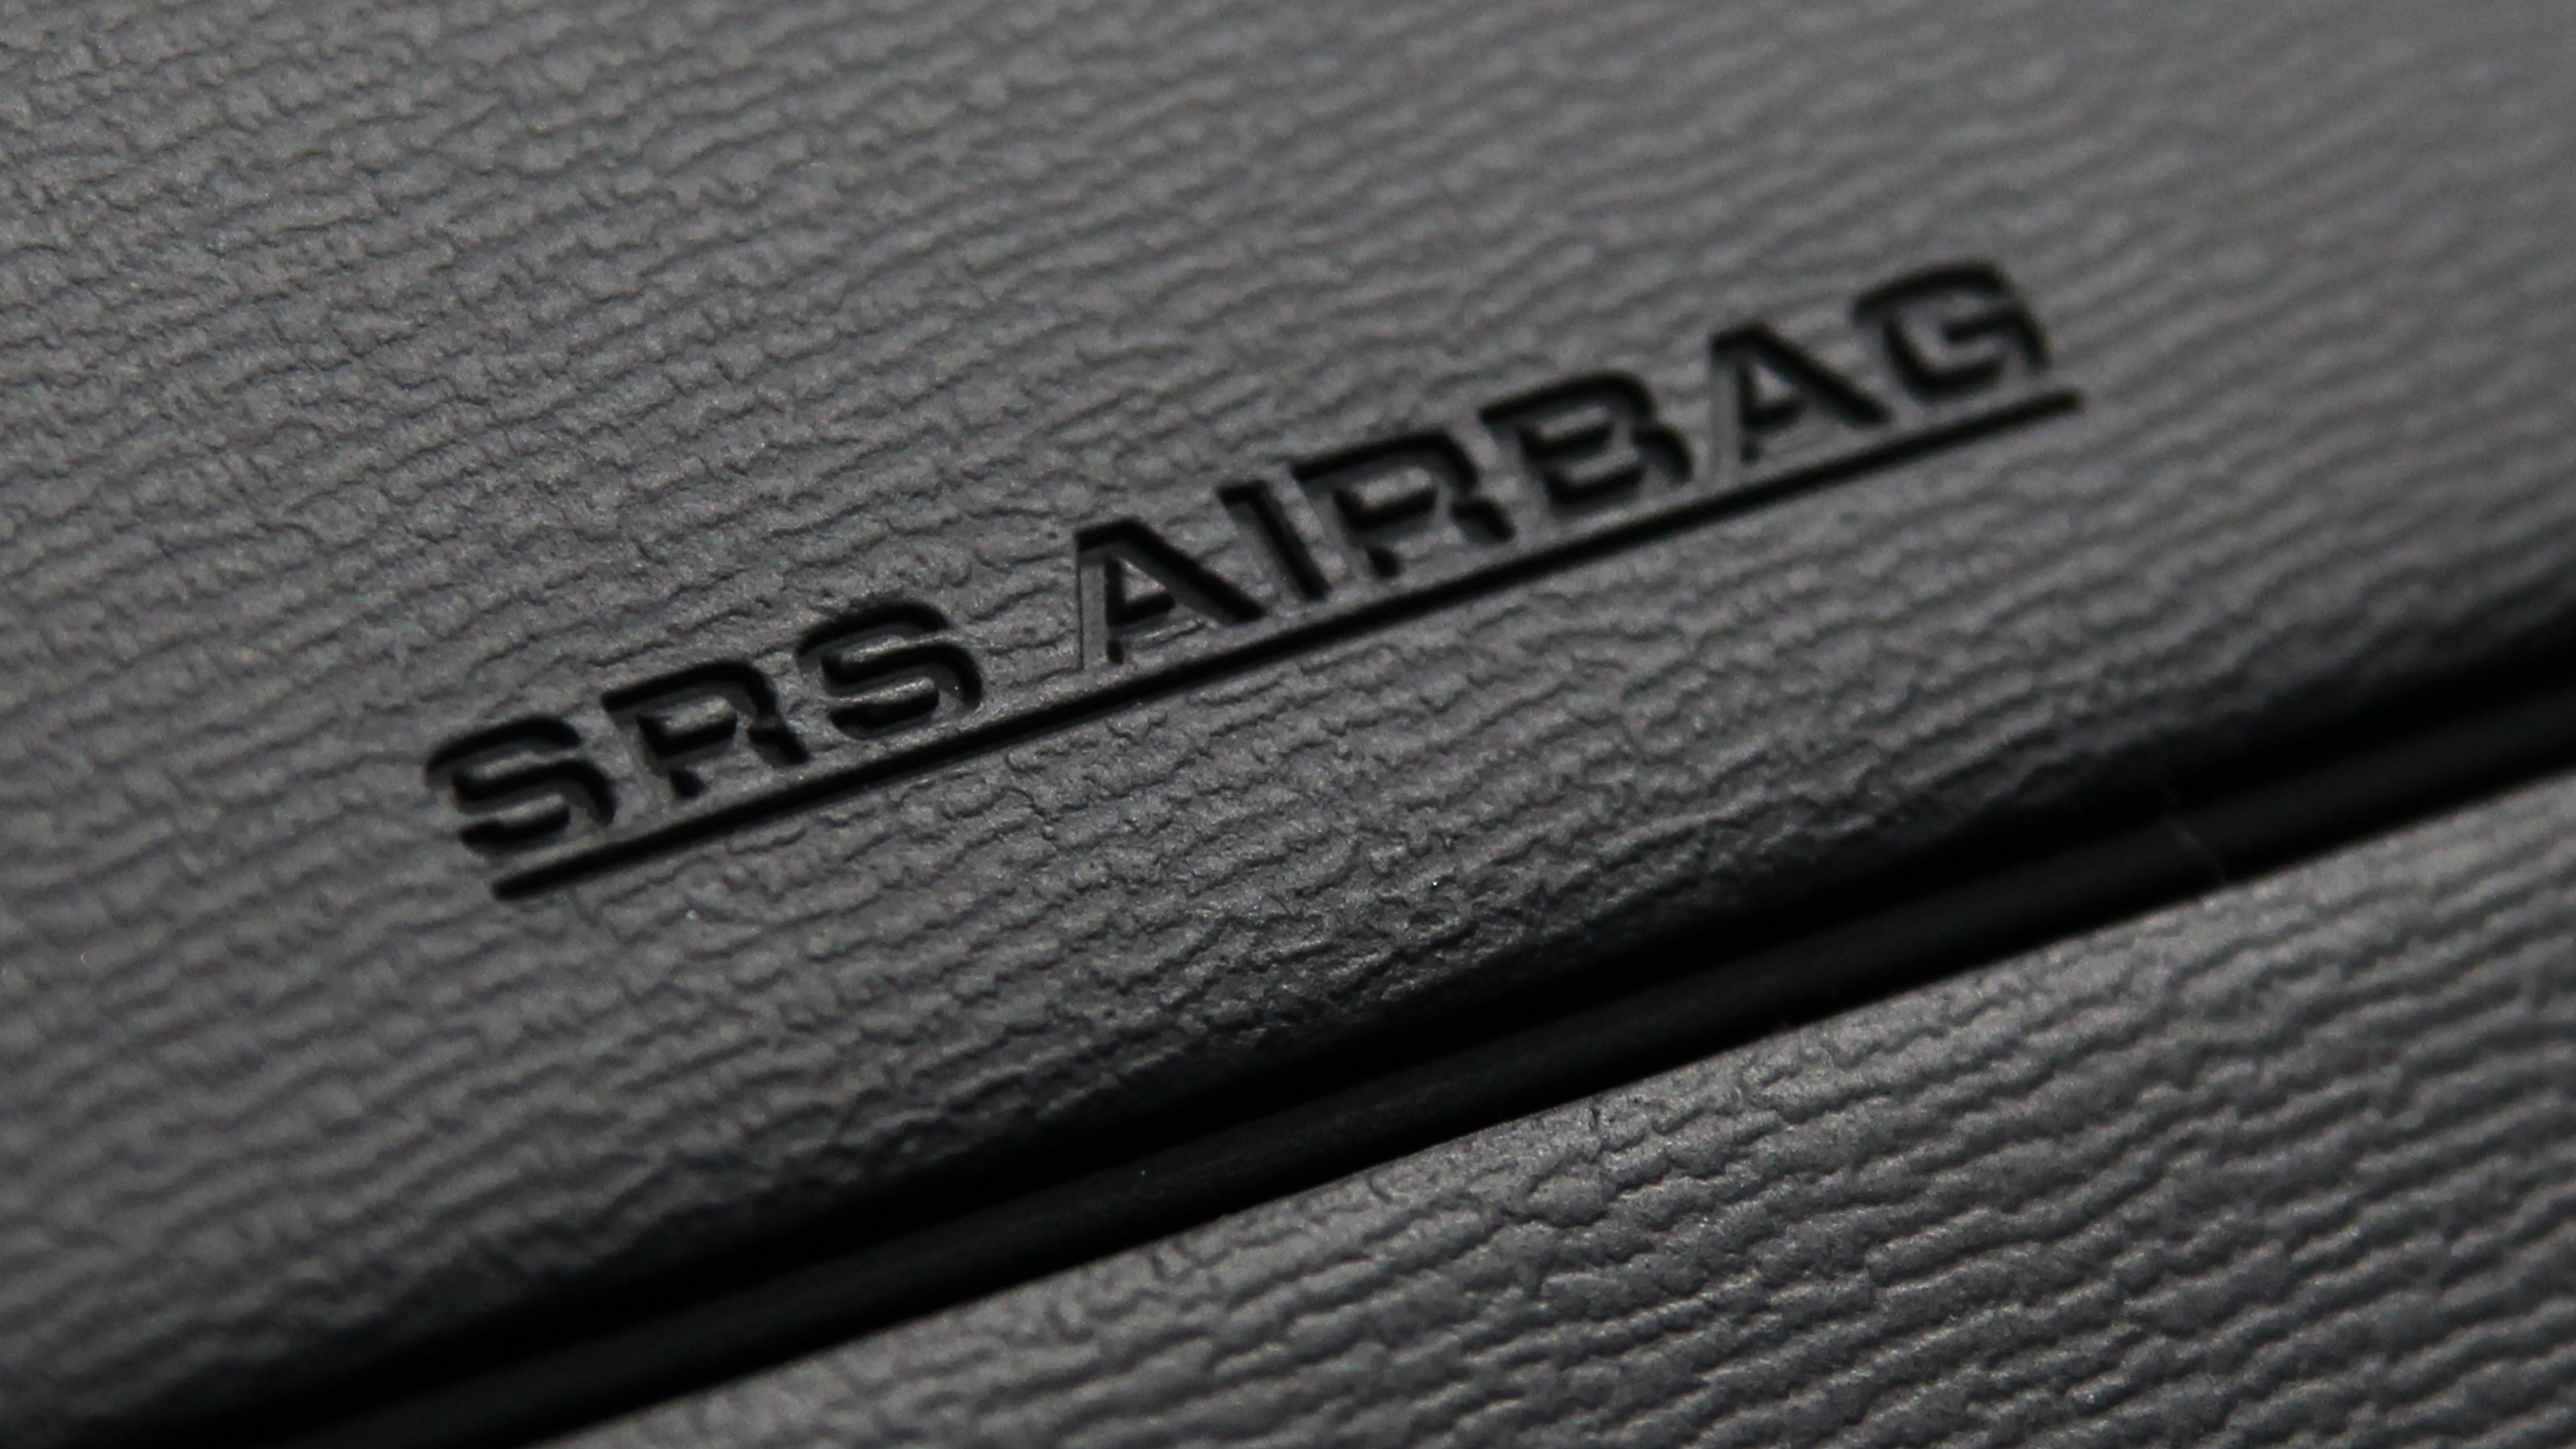 4 car companies settle takata airbag lawsuit for 553 million ncpr news. Black Bedroom Furniture Sets. Home Design Ideas